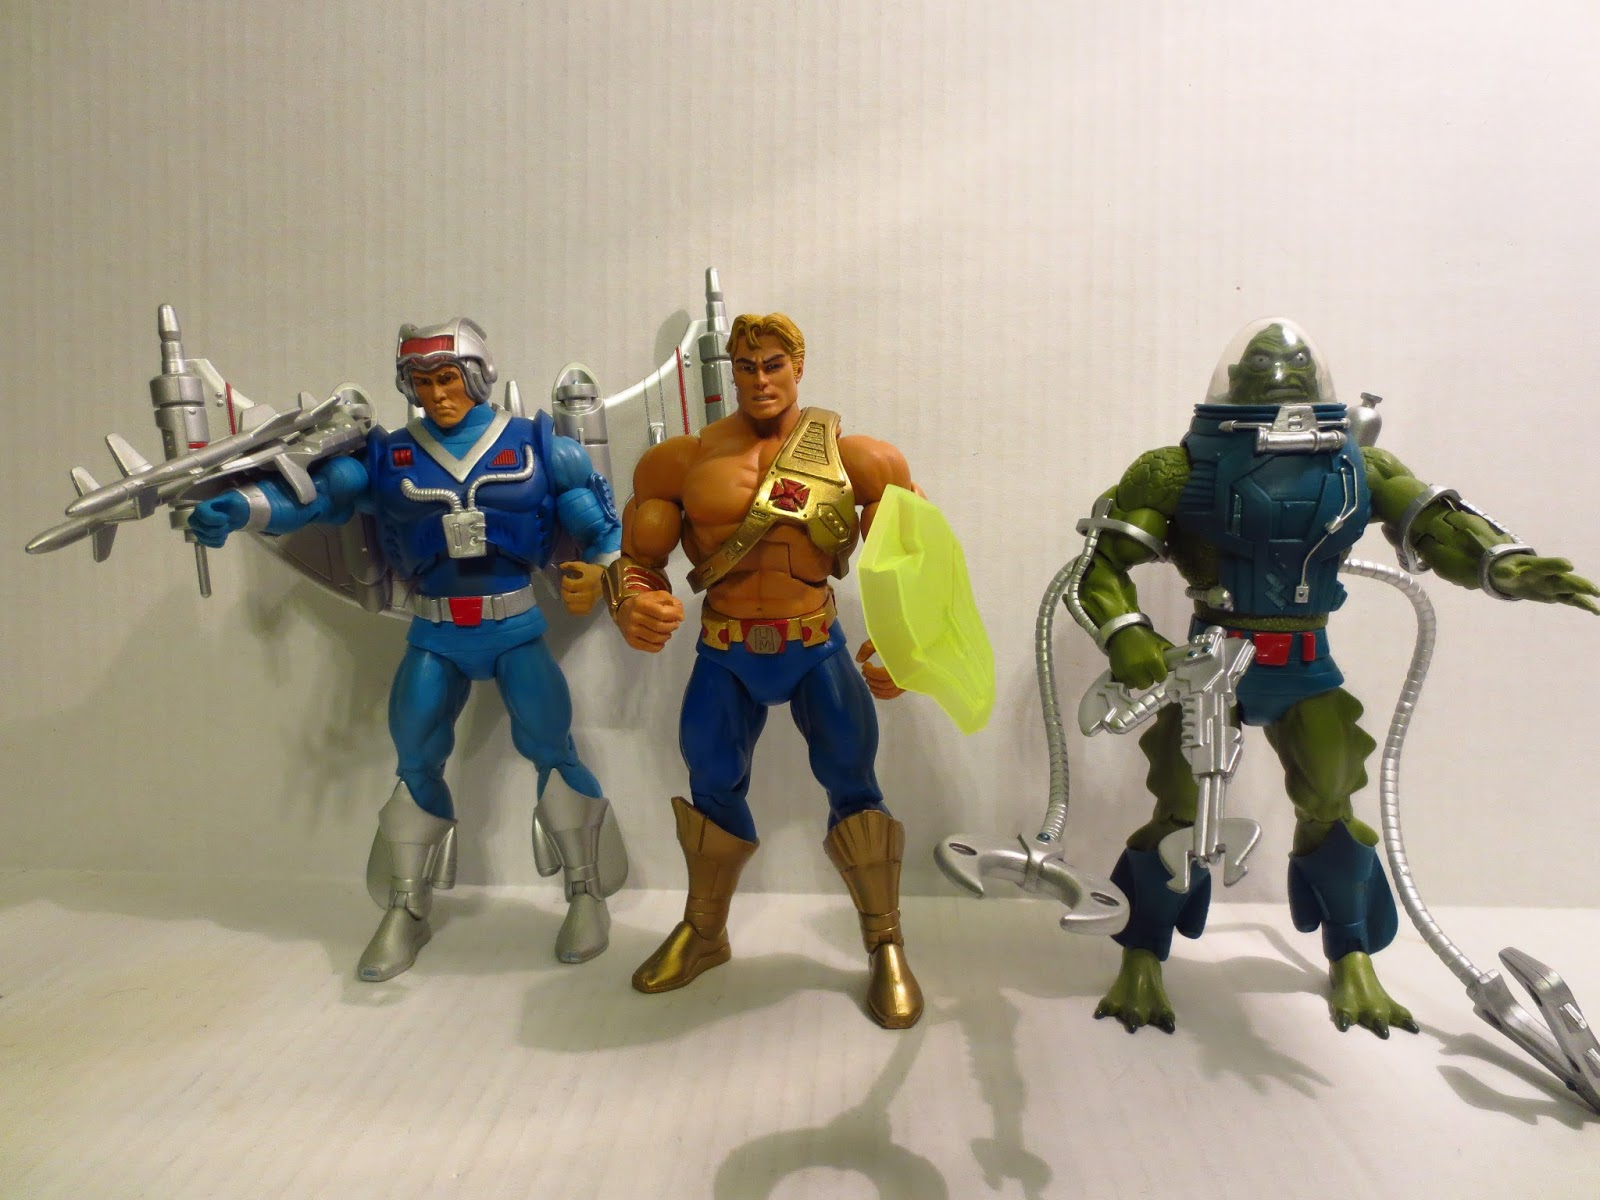 The Epic Review: Action Figure Review: Galactic Protector He